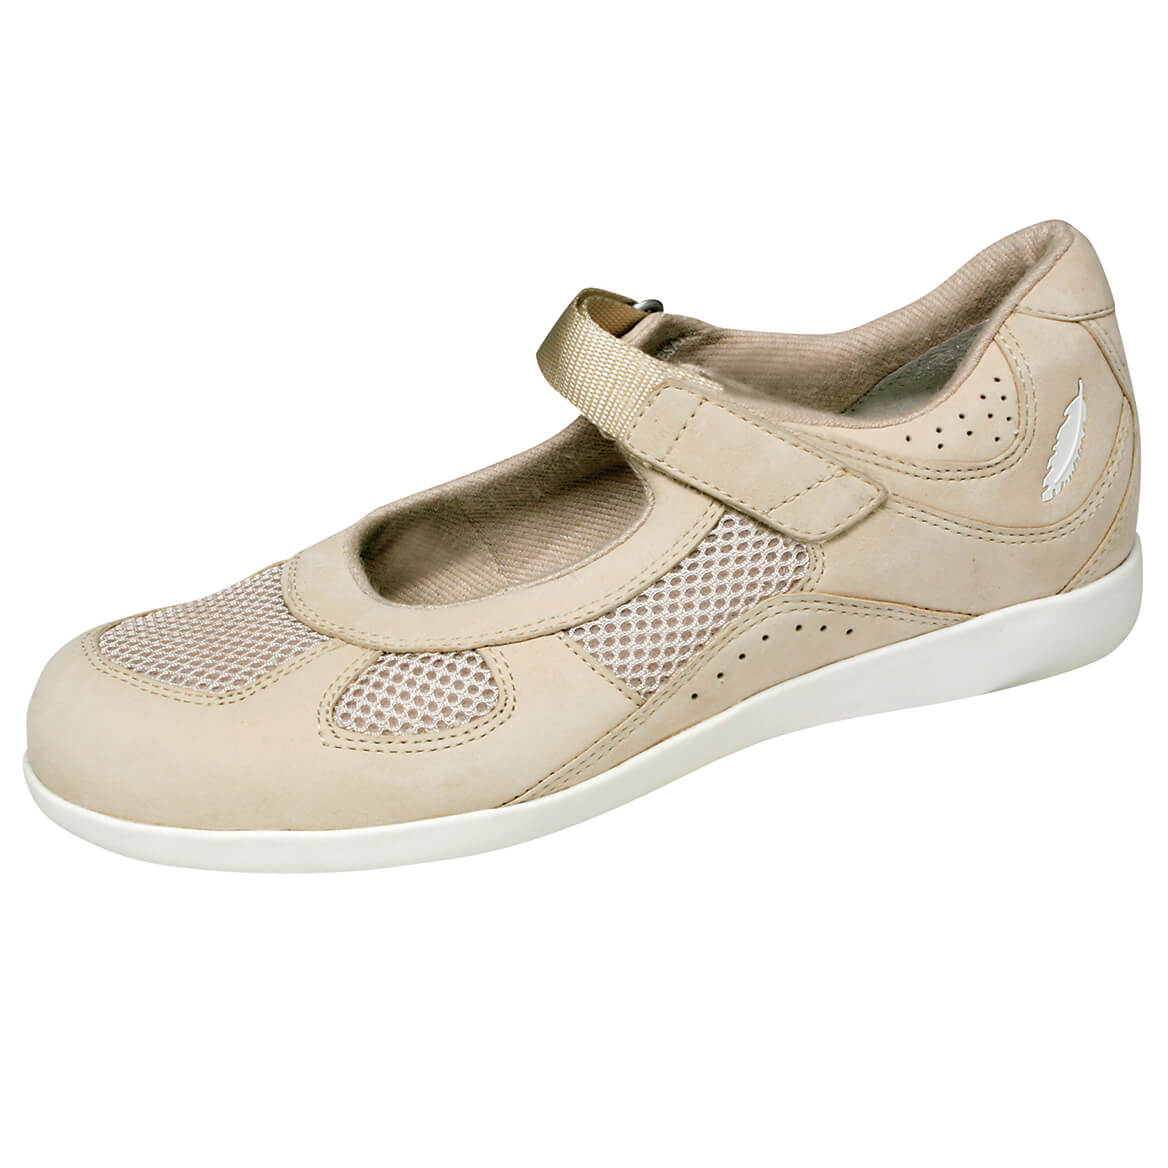 Drew® Delite Women's Mary Jane Shoe - RTV-363603